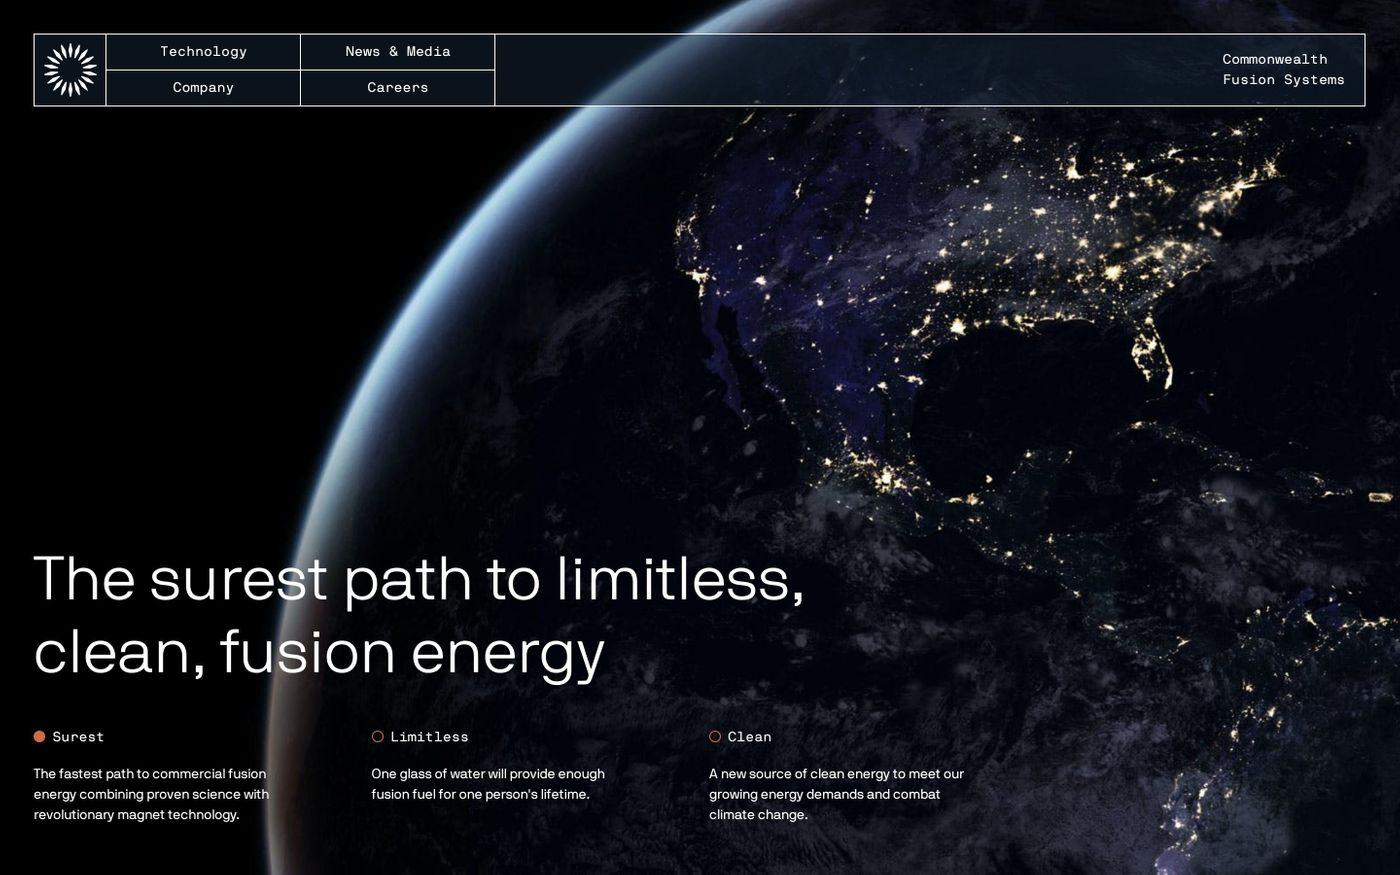 Screenshot of  Commonwealth Fusion Systems website